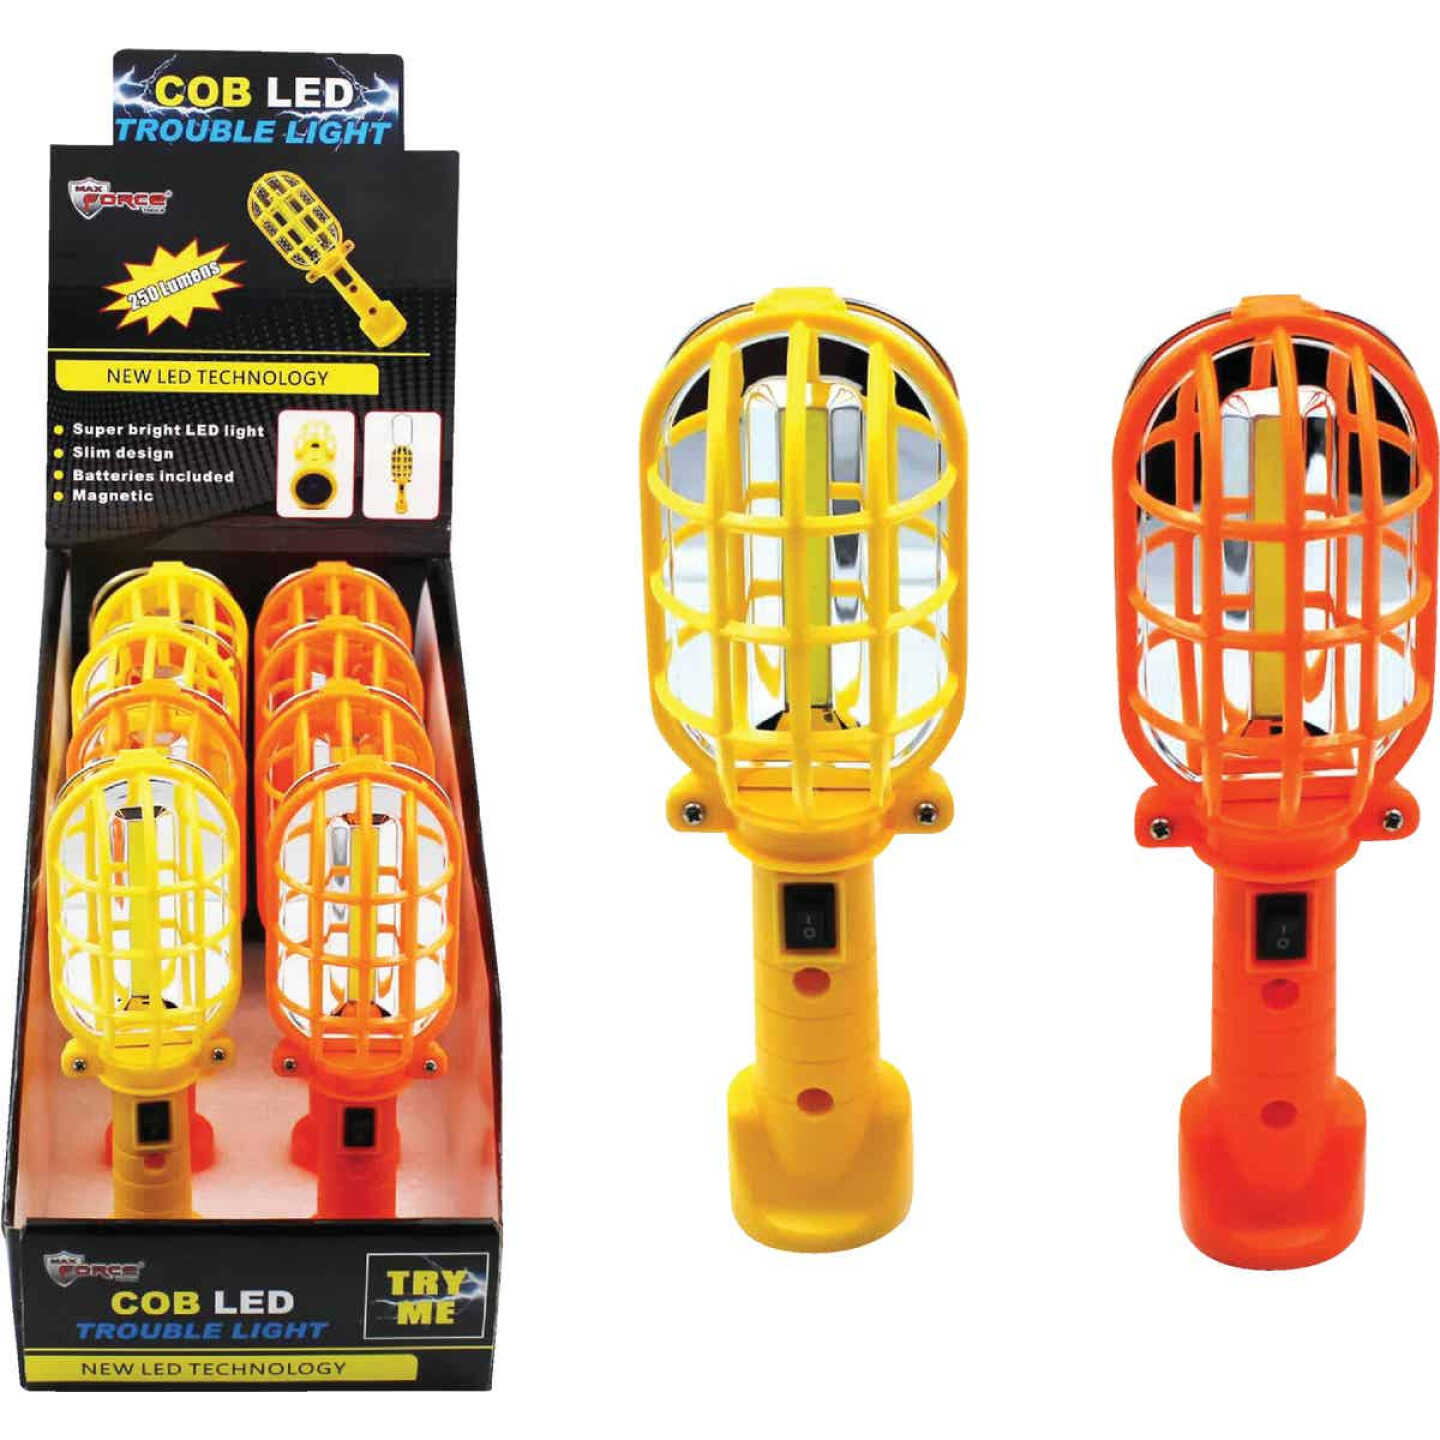 Diamond Visions Max Force COB LED Battery Operated Trouble Light Image 1